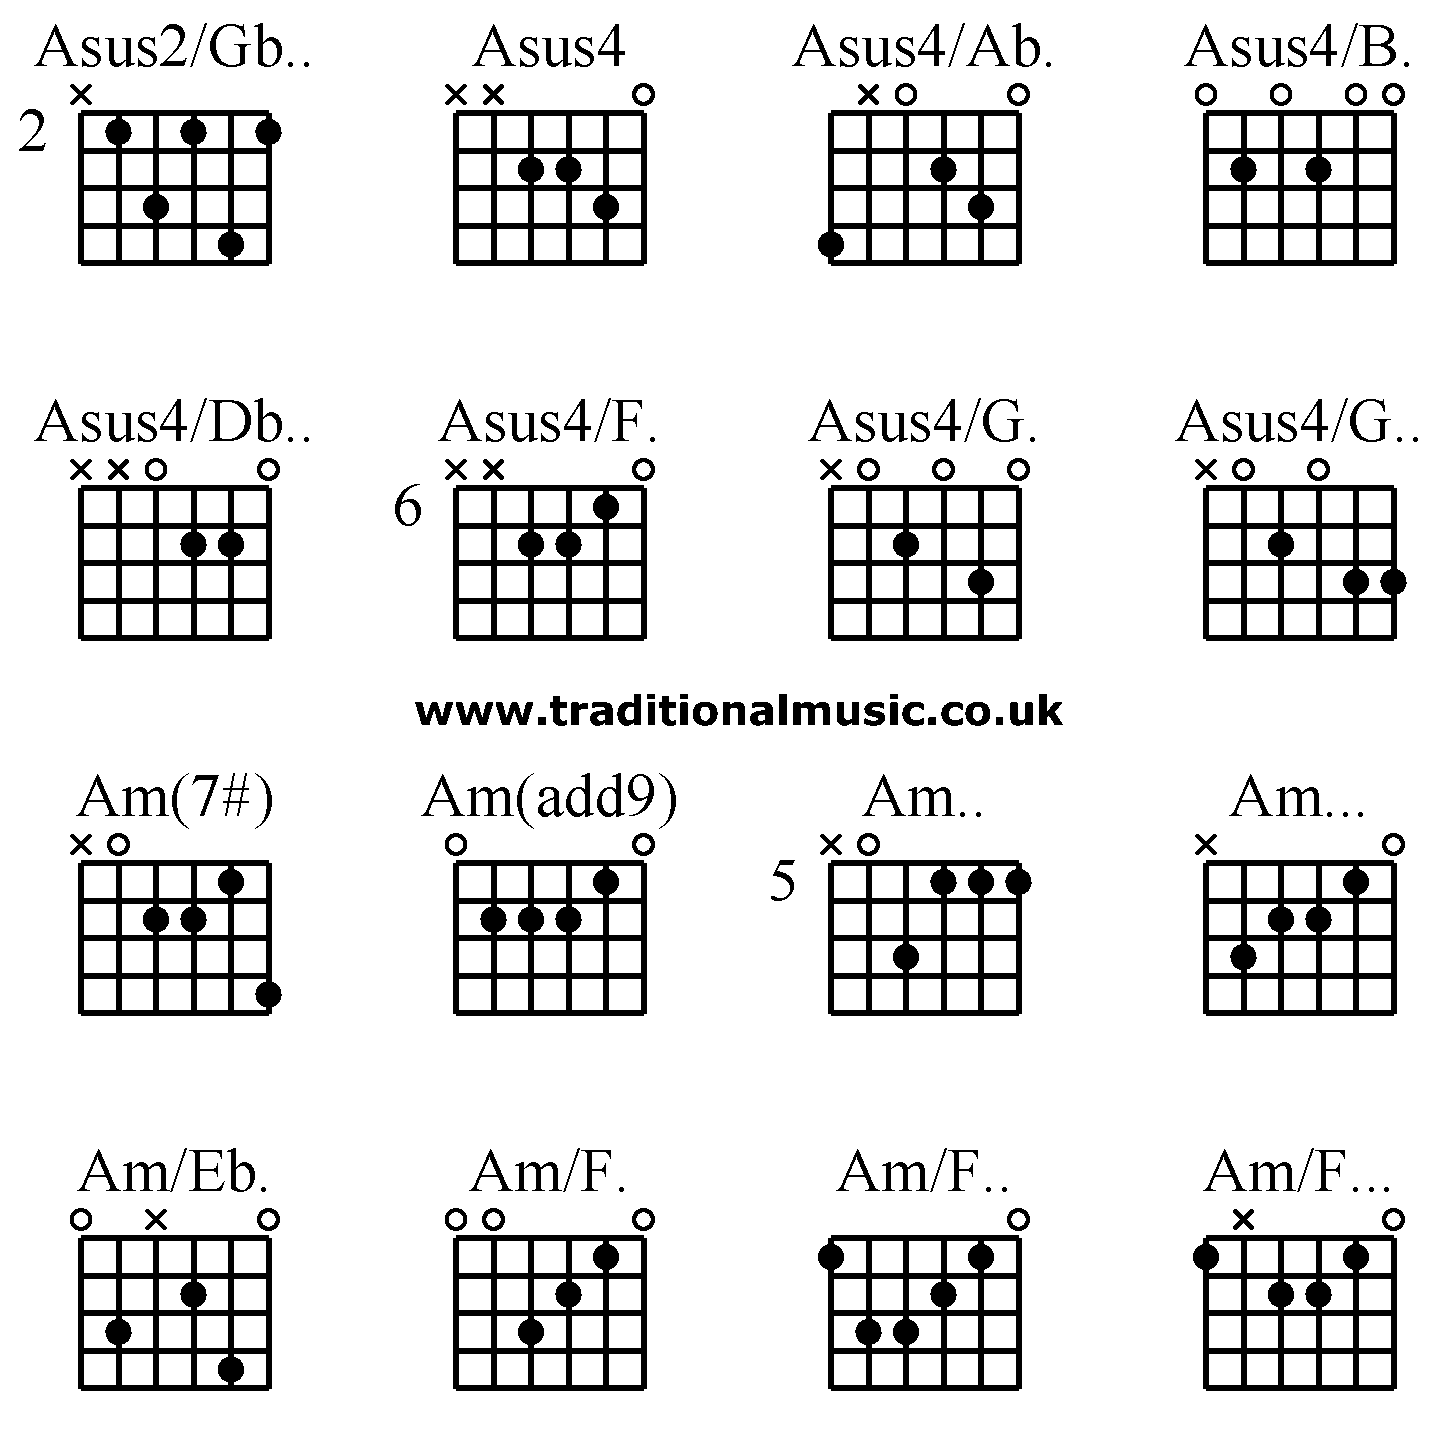 Advanced guitar chords: Asus2/Gb.. Asus4 Asus4/Ab. Asus4/B